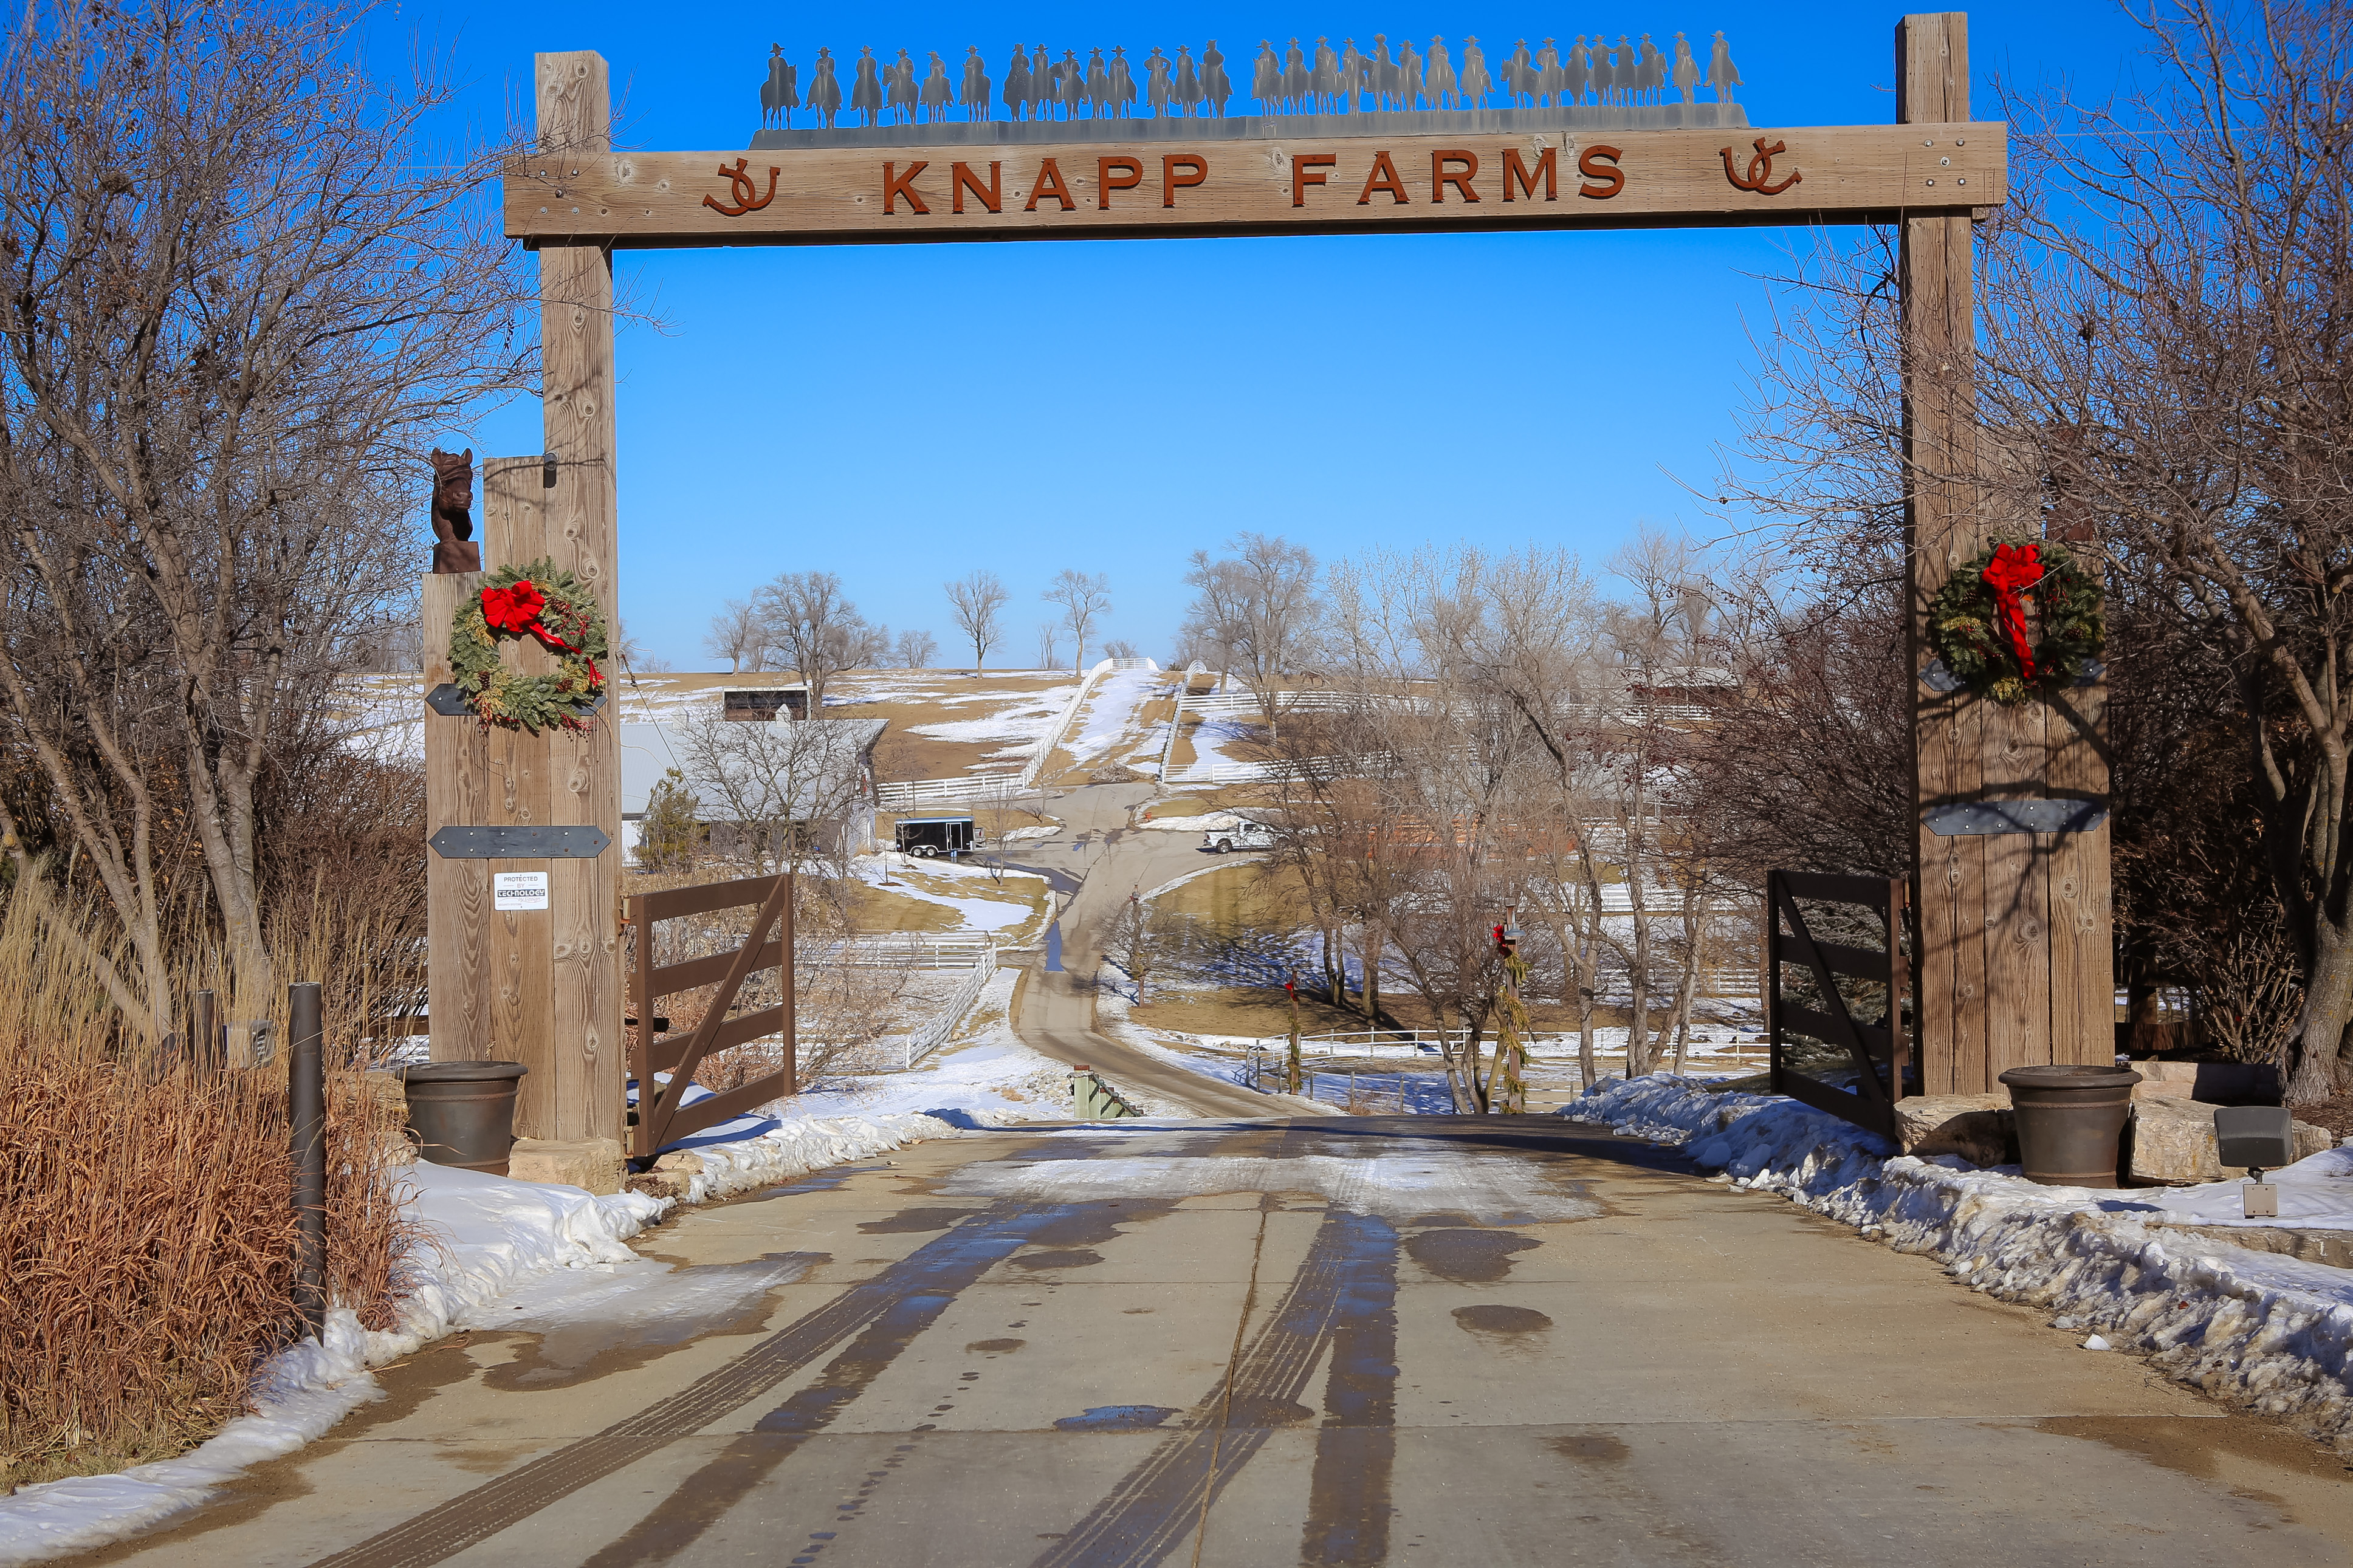 The farm's holiday entry gate.